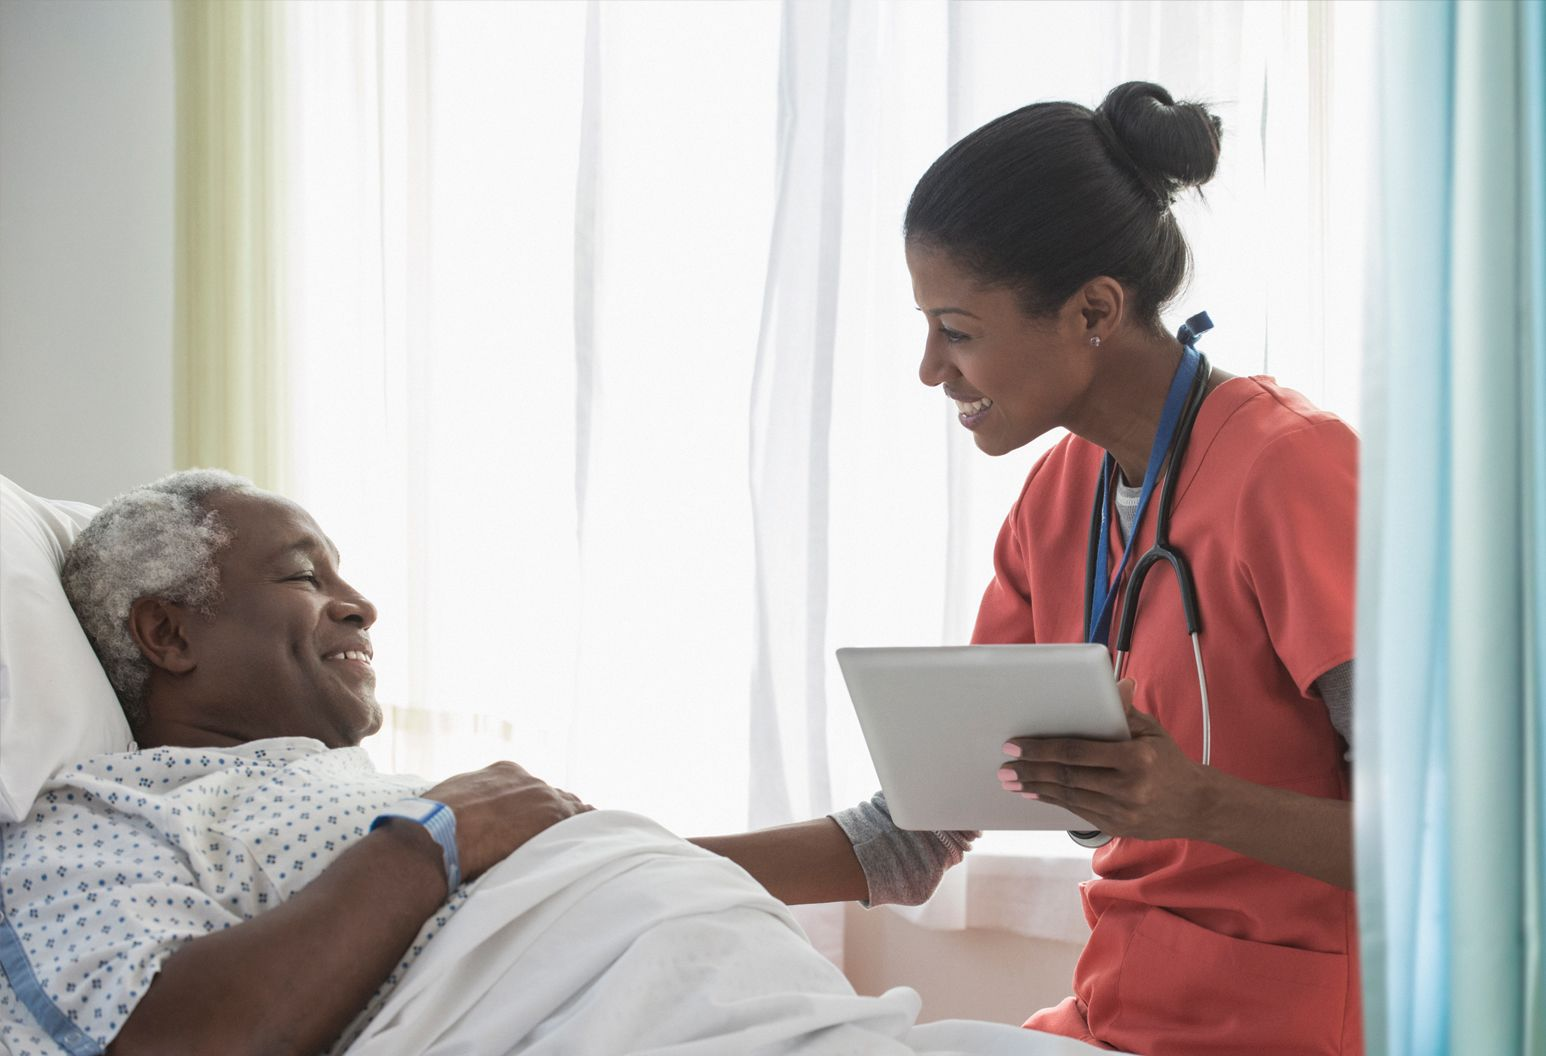 An elderly man laying in bed is being looked after by a care professional wearing a stethoscope and holding a tablet.